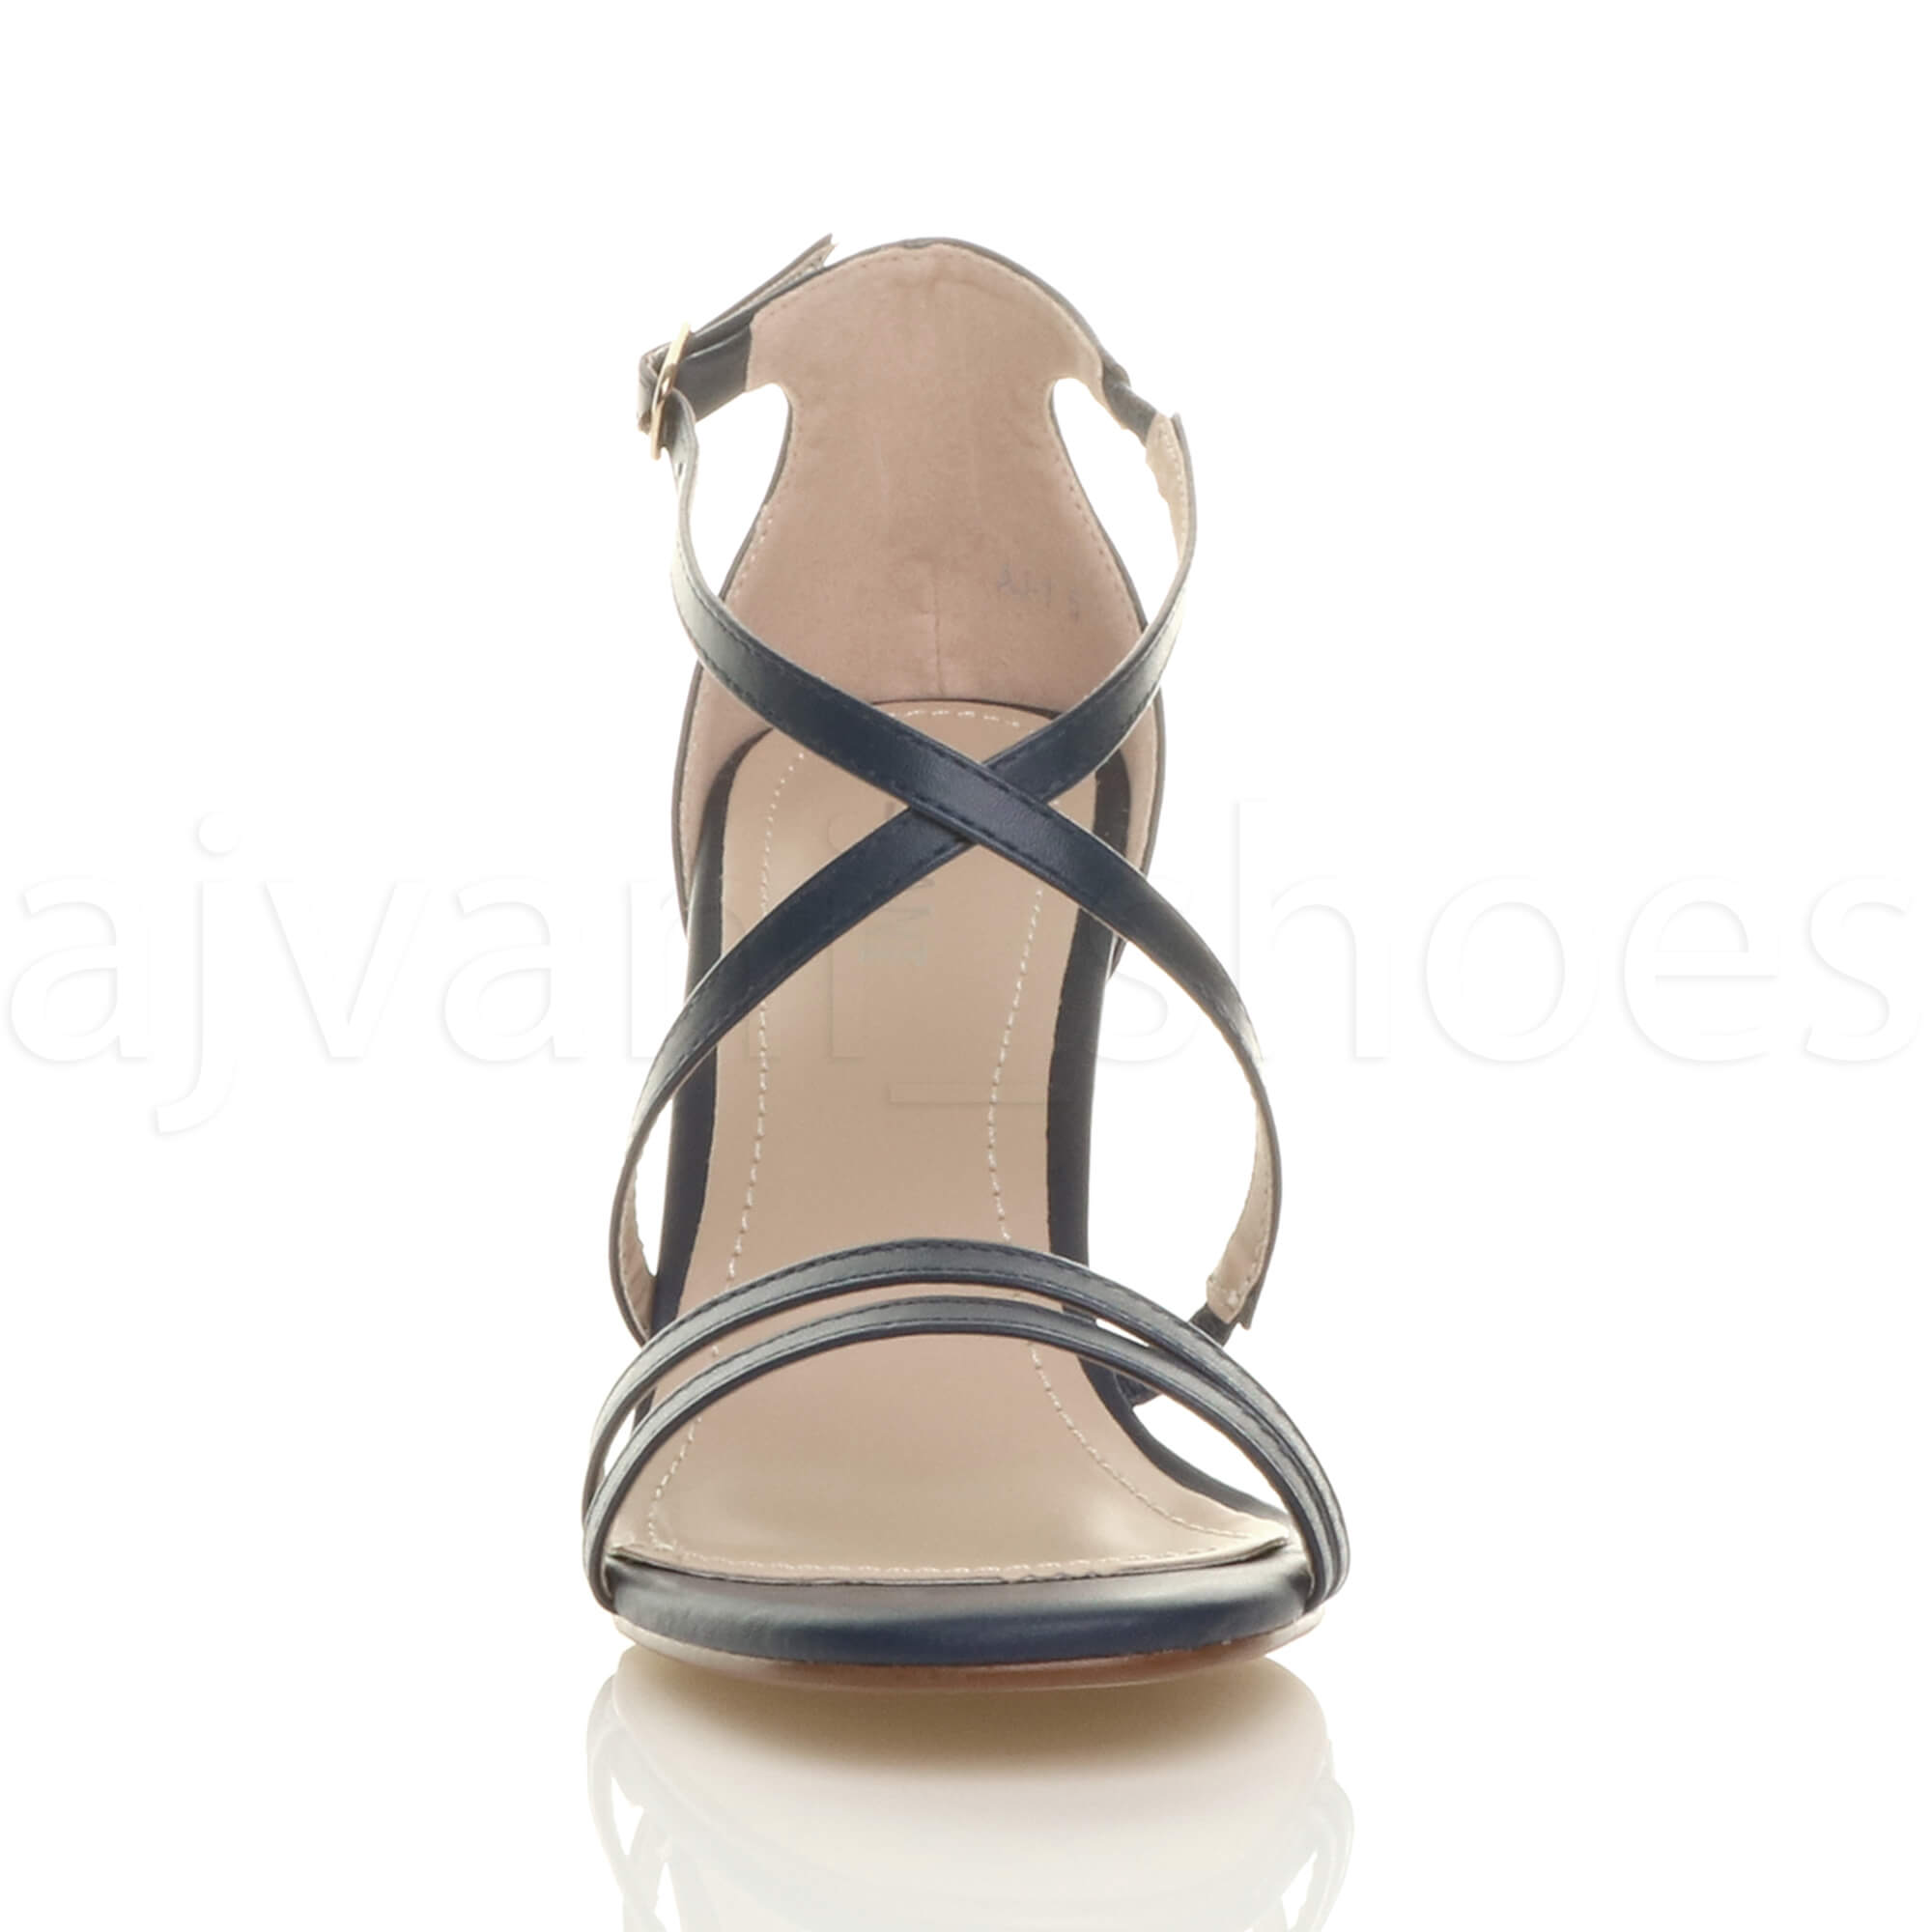 WOMENS-LADIES-MID-HIGH-HEEL-STRAPPY-CROSSOVER-WEDDING-PROM-SANDALS-SHOES-SIZE thumbnail 83